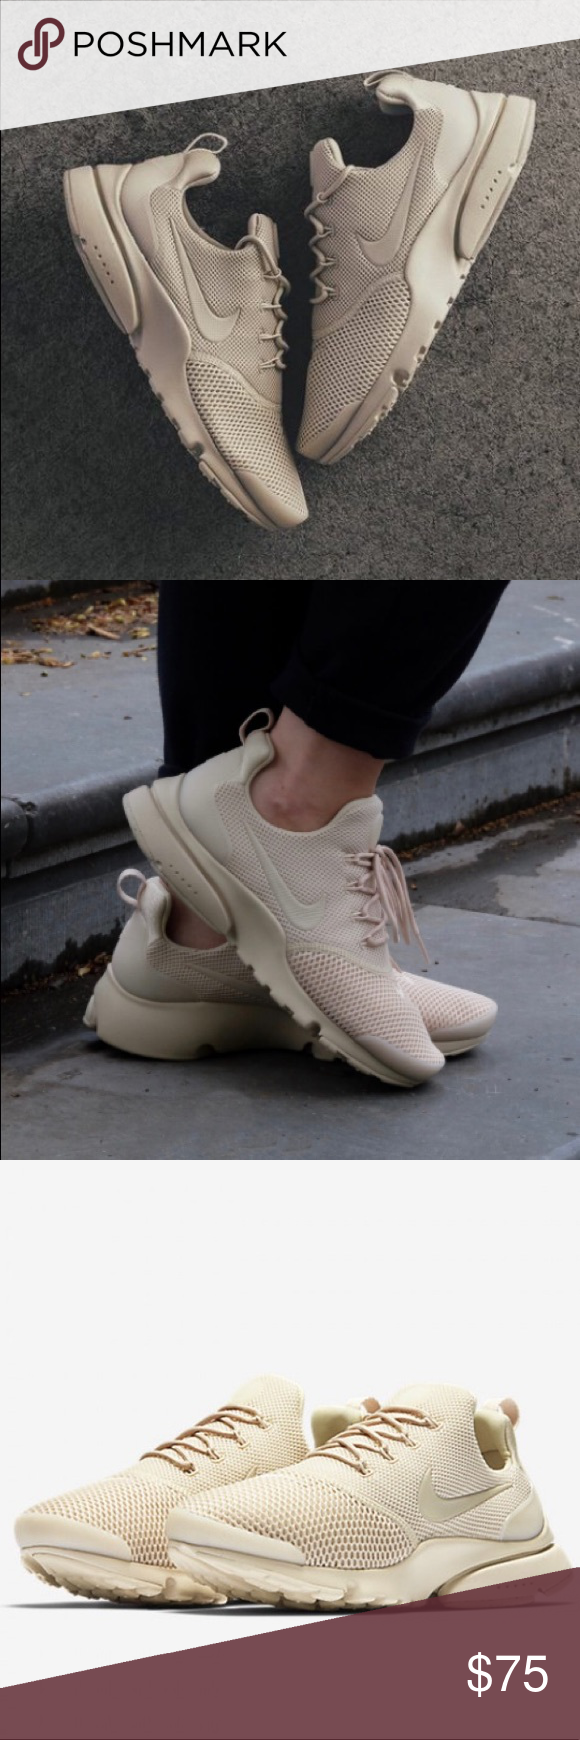 55cb63323c4d Nike Presto Fly New women s Nike Presto Fly in Oatmeal cream! These come in  full boxes    pics to come   Nike Shoes Athletic Shoes